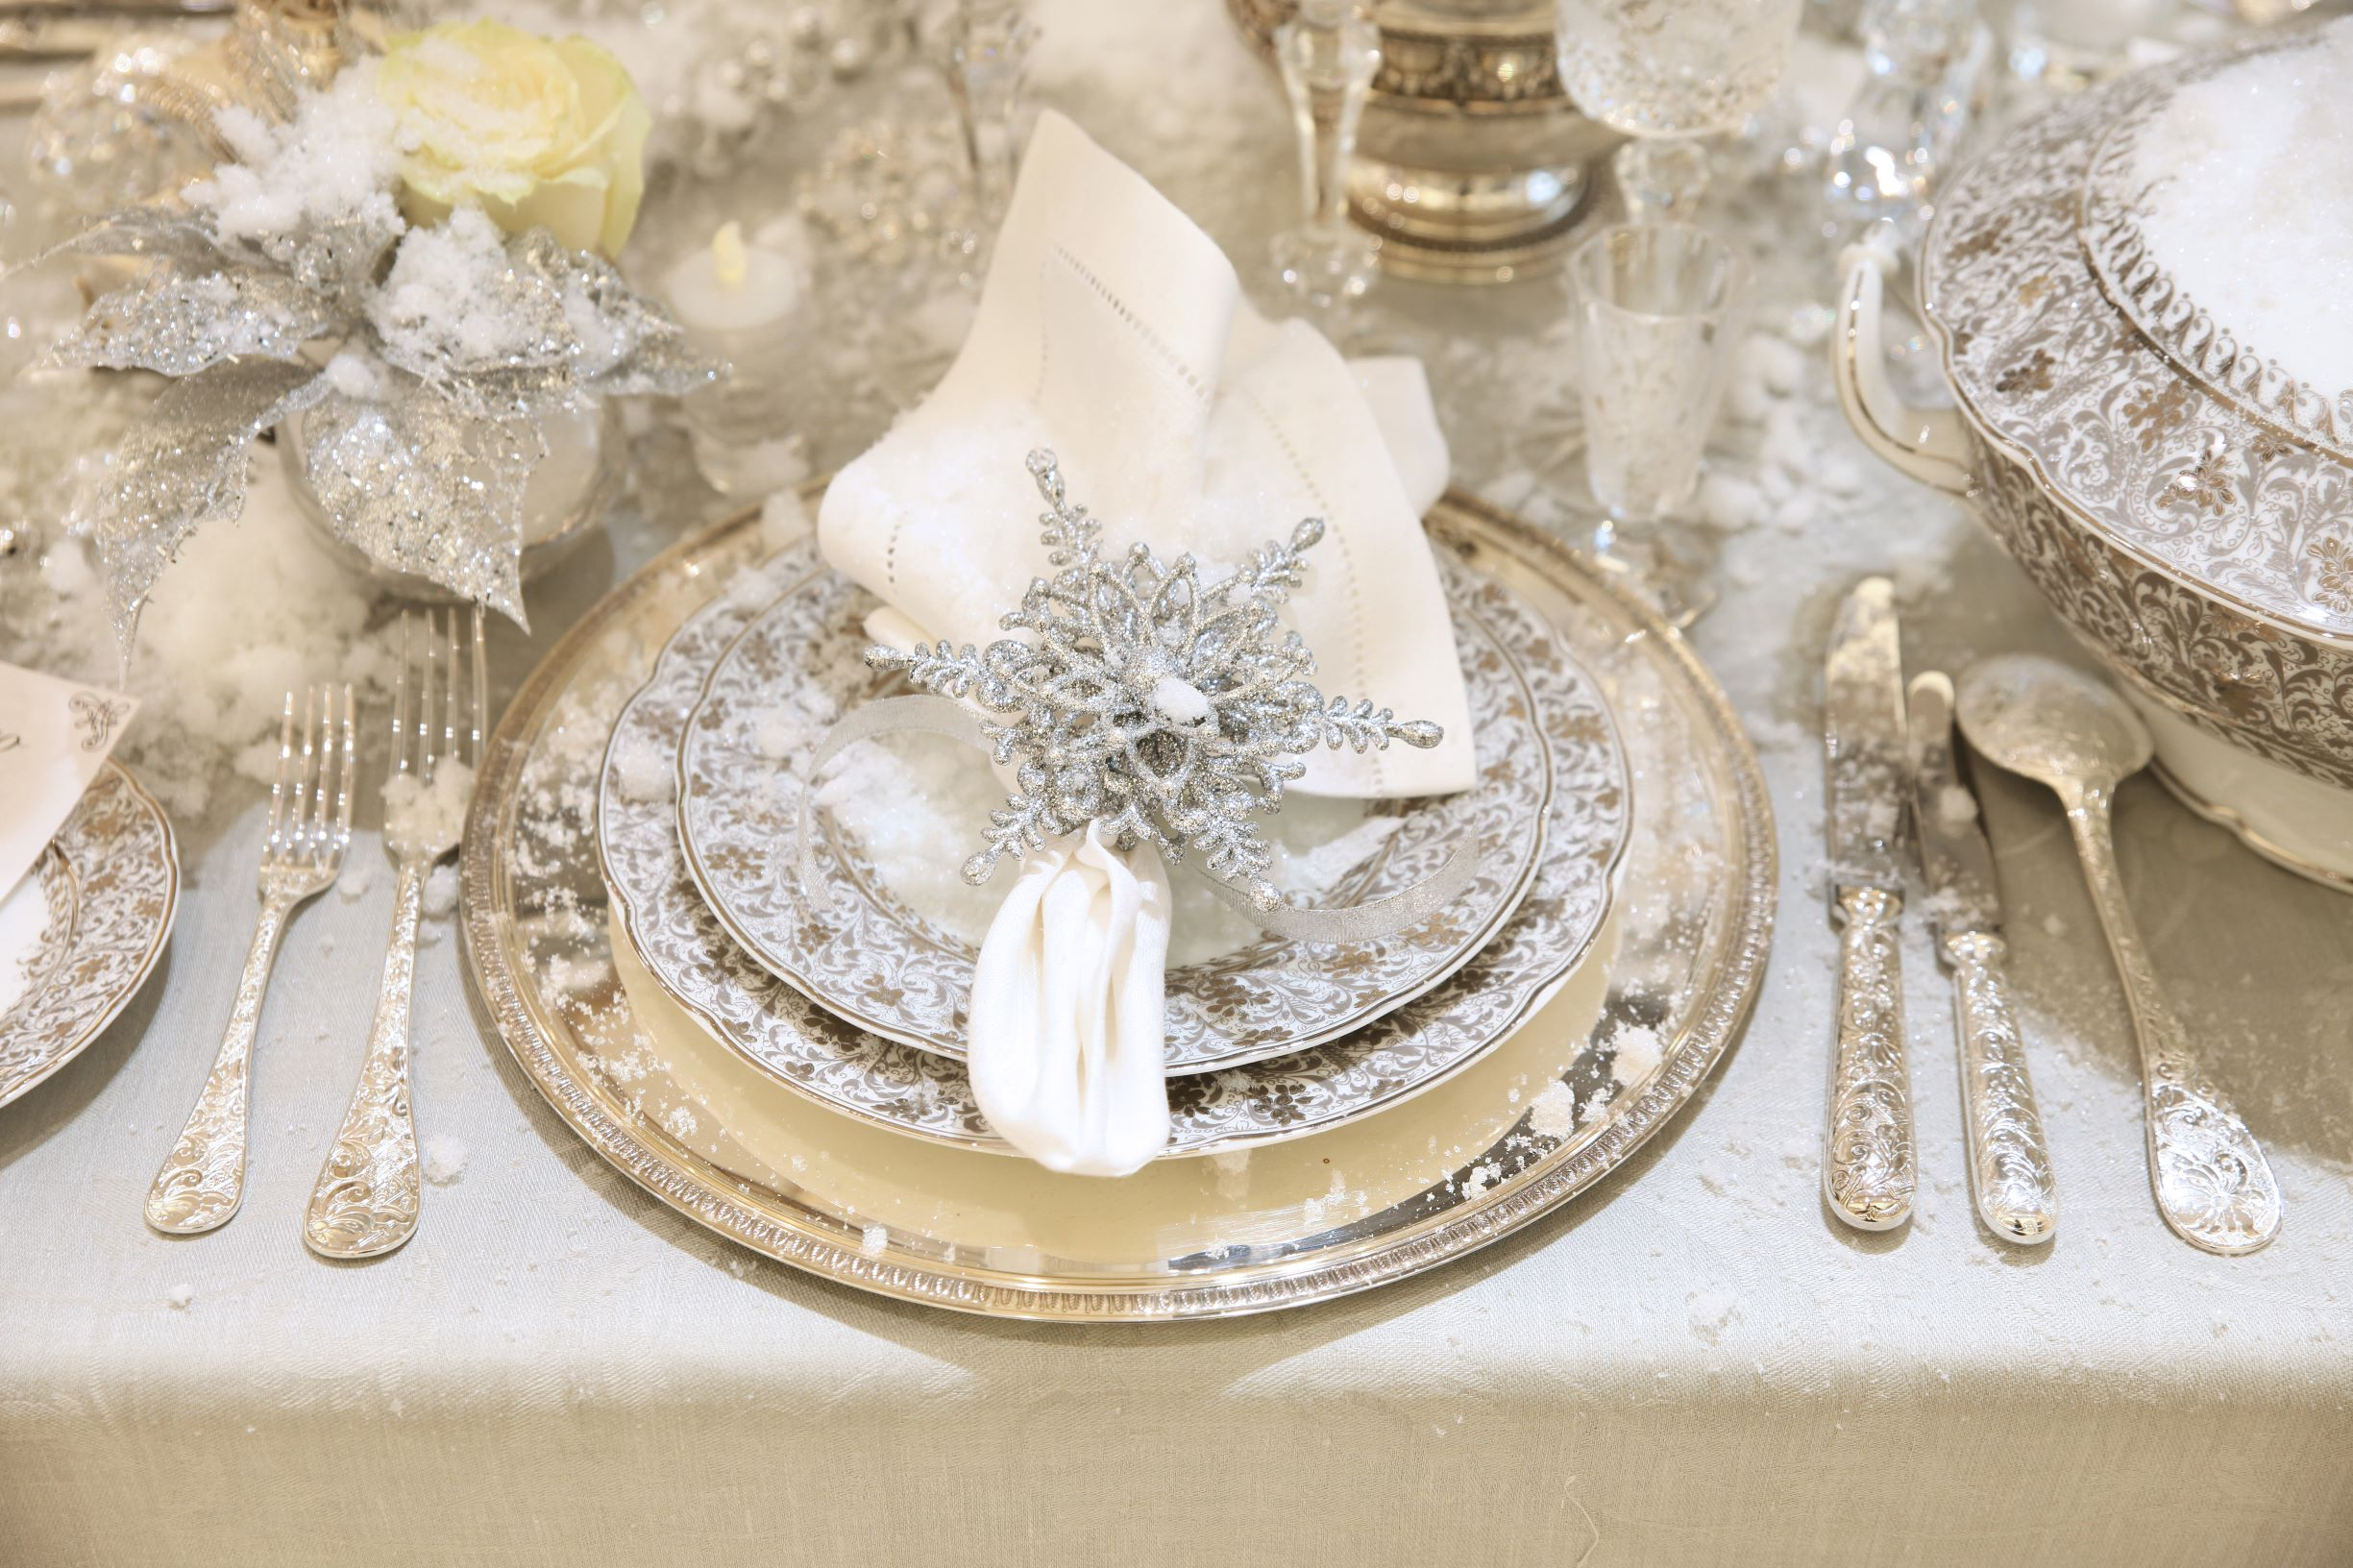 Gold, silver, and glass elements are perfect for glam Christmas tables.